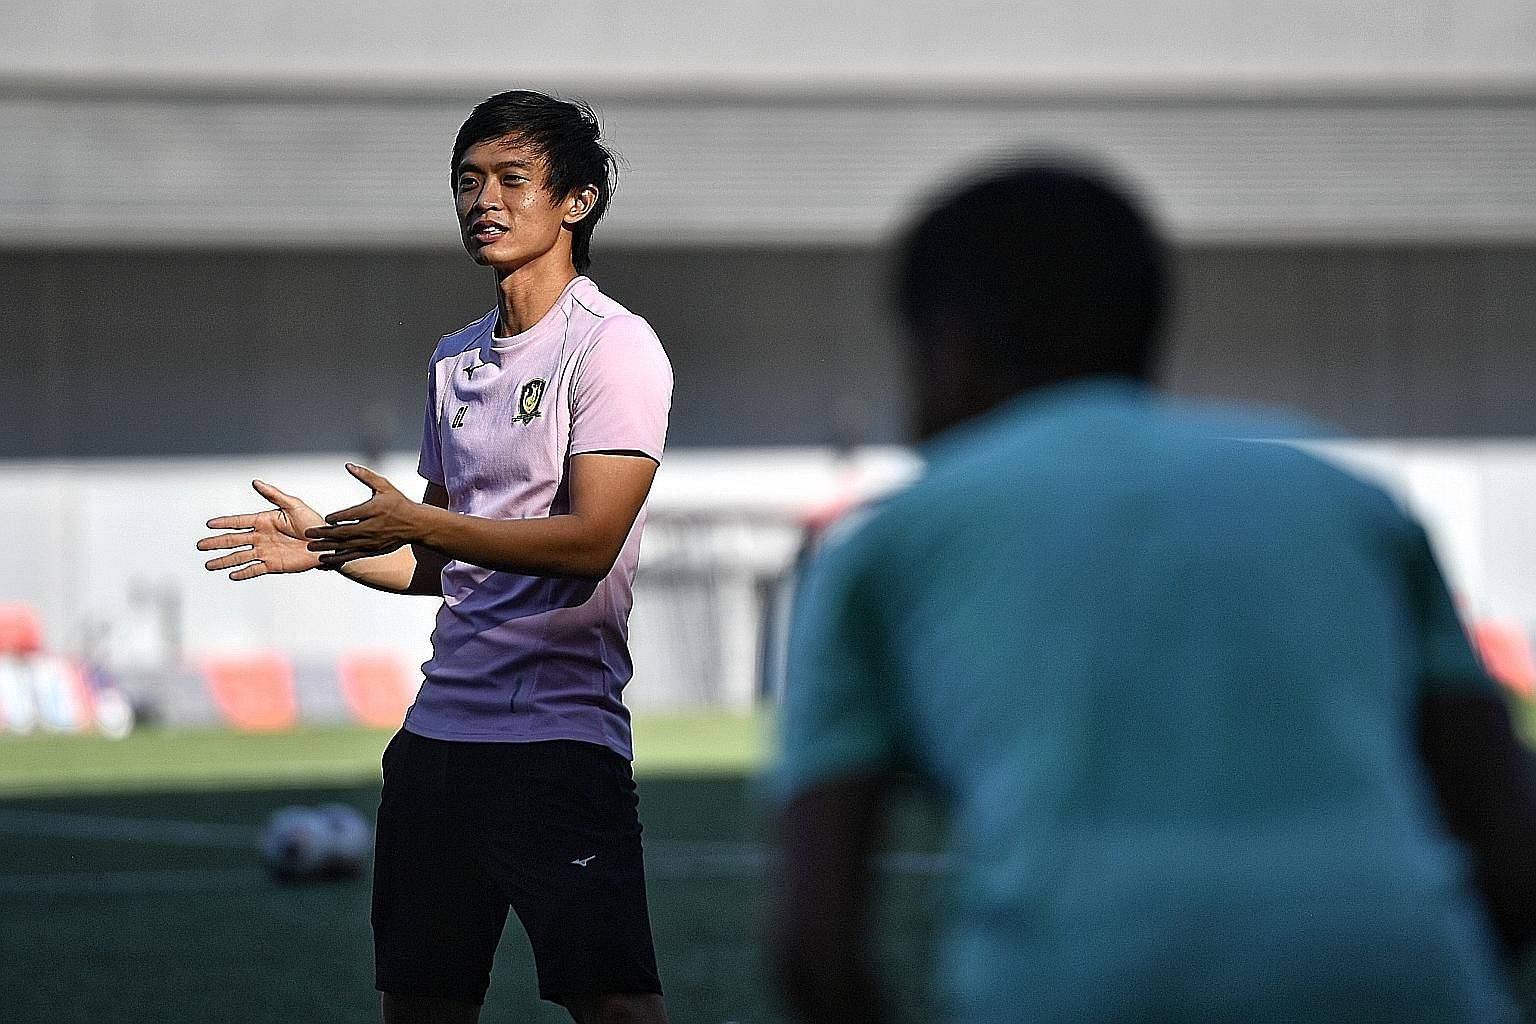 Tampines coach Gavin Lee is only 29 but despite being younger than some senior players, he has won them over with his commitment and tactics. ST PHOTO: ARIFFIN JAMAR